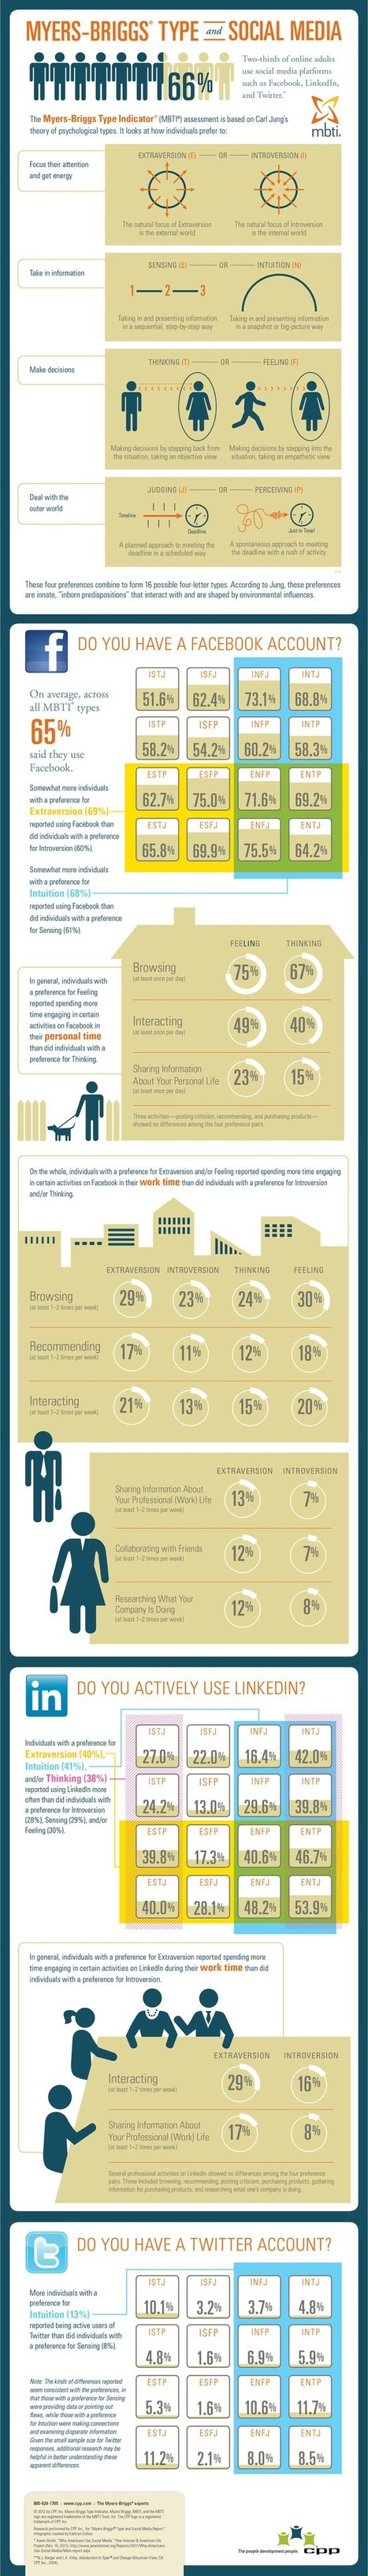 Social Media Personality preferences via MBTI:  Self-Awareness & Personality Pinterest | Informed Social Marketing | Scoop.it